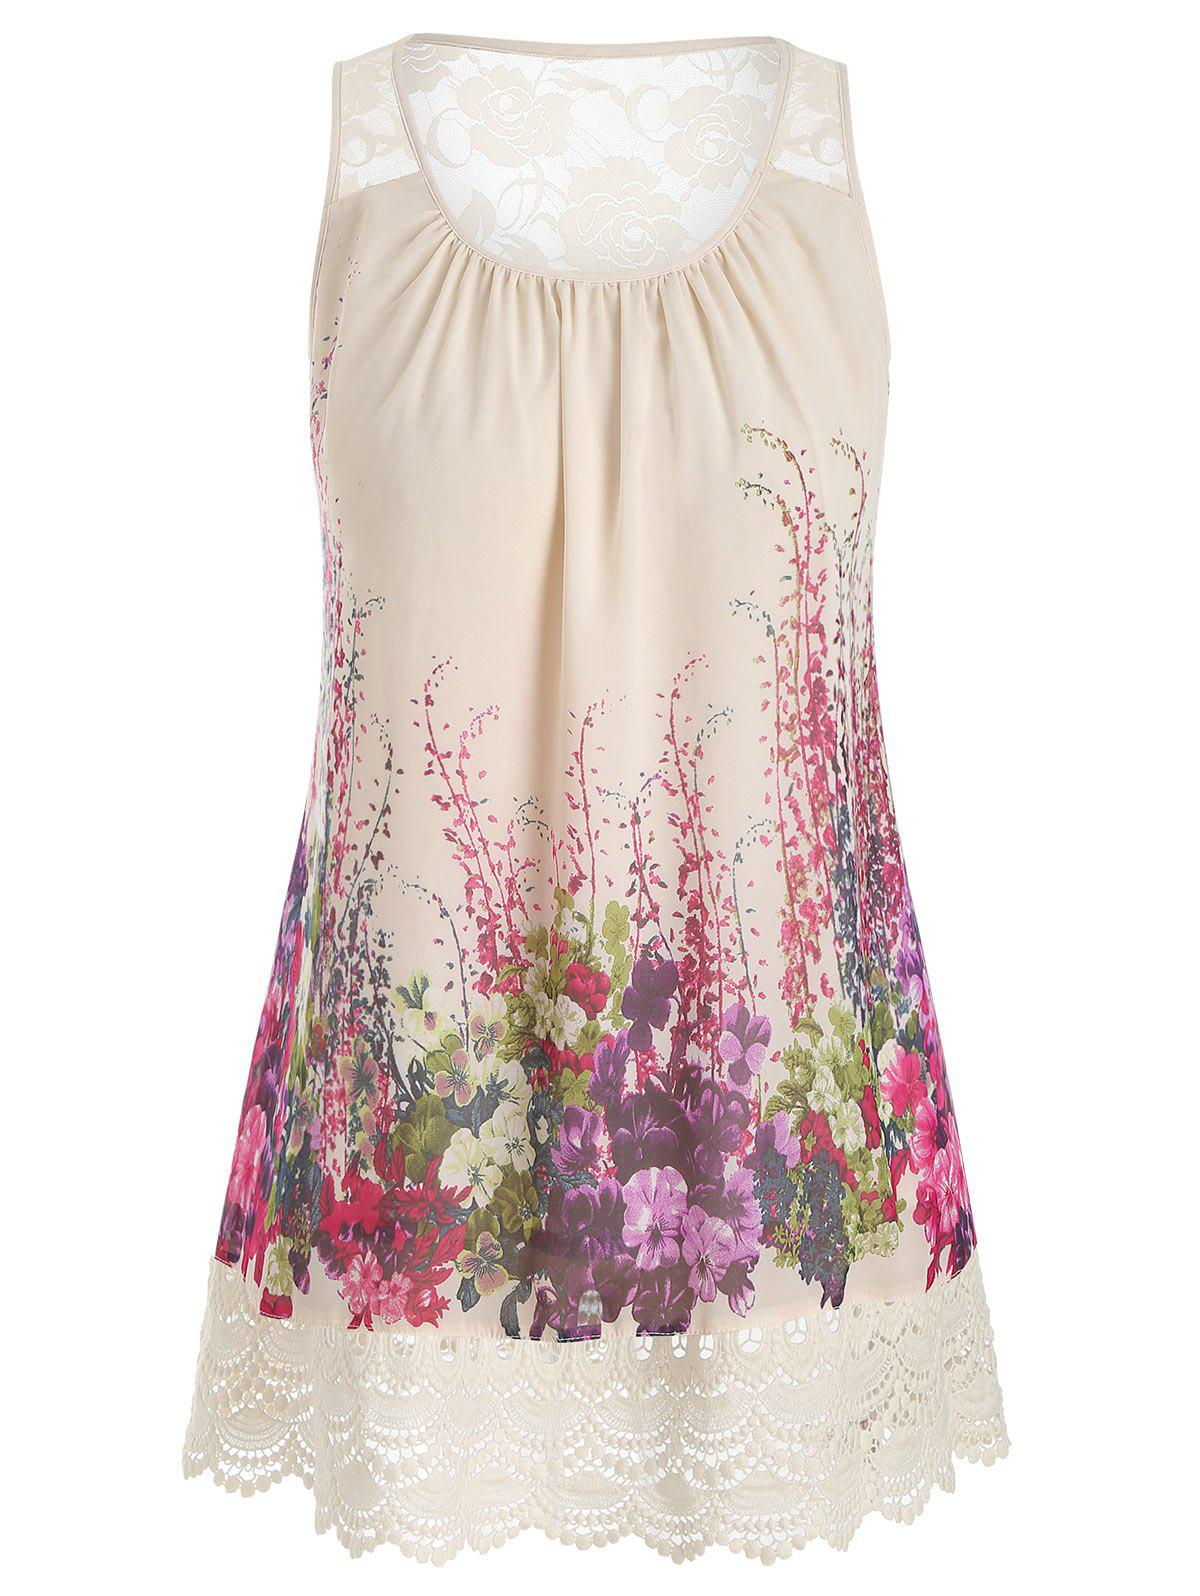 Store Plus Size Lace Insert Scalloped Floral Print Tank Top